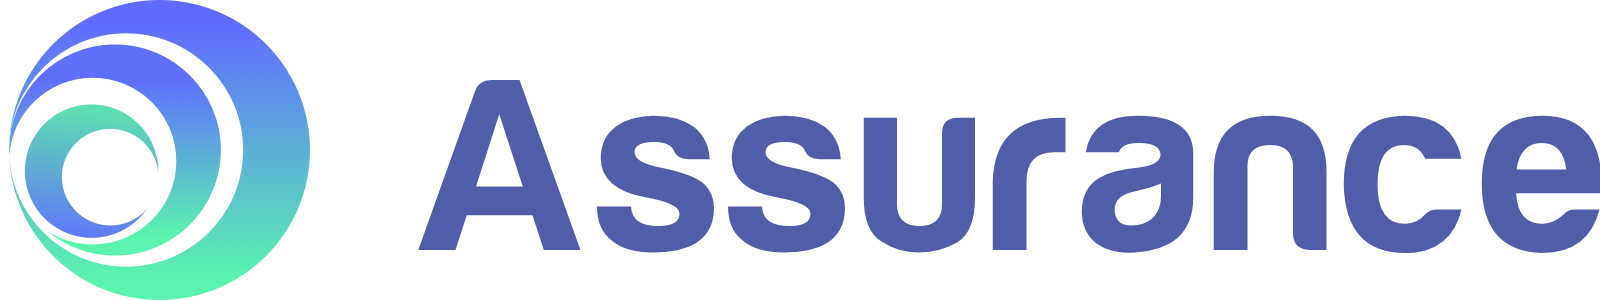 assurance logo on white bg